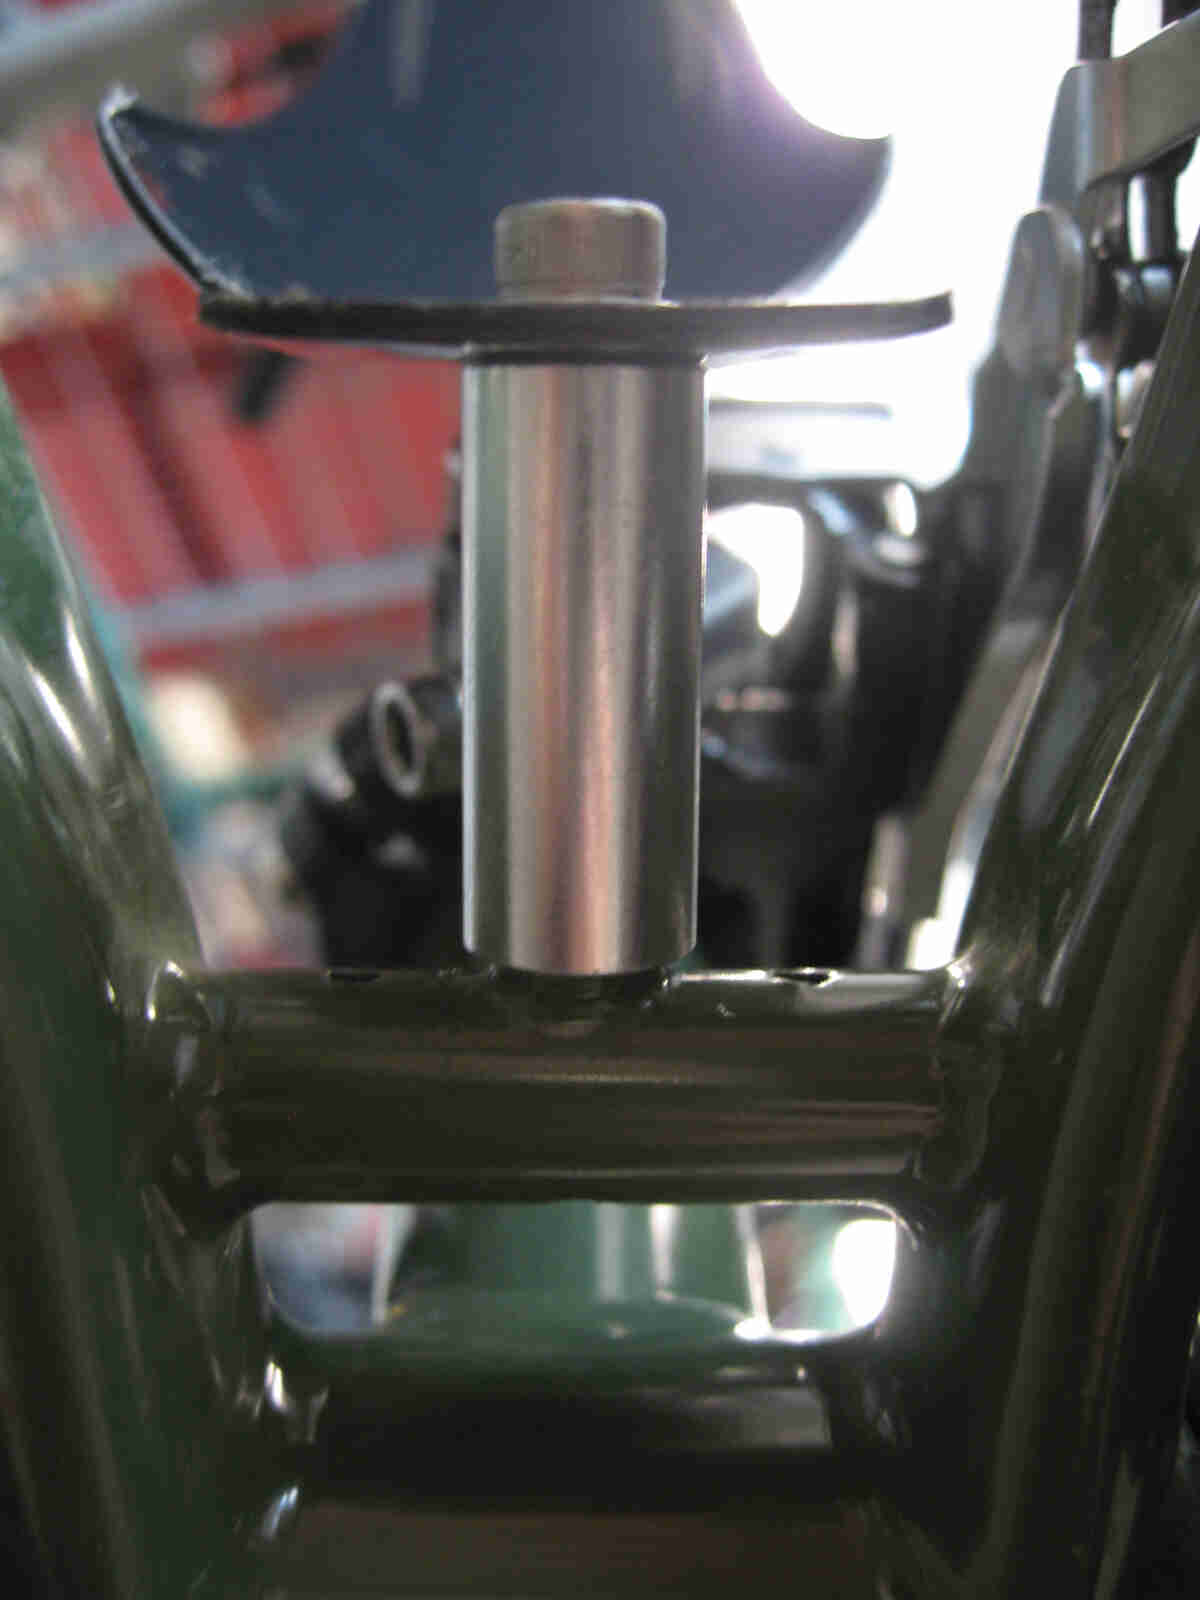 Surly Ogre bike - green - rear fender mounting bolt detail - underneath, close up view